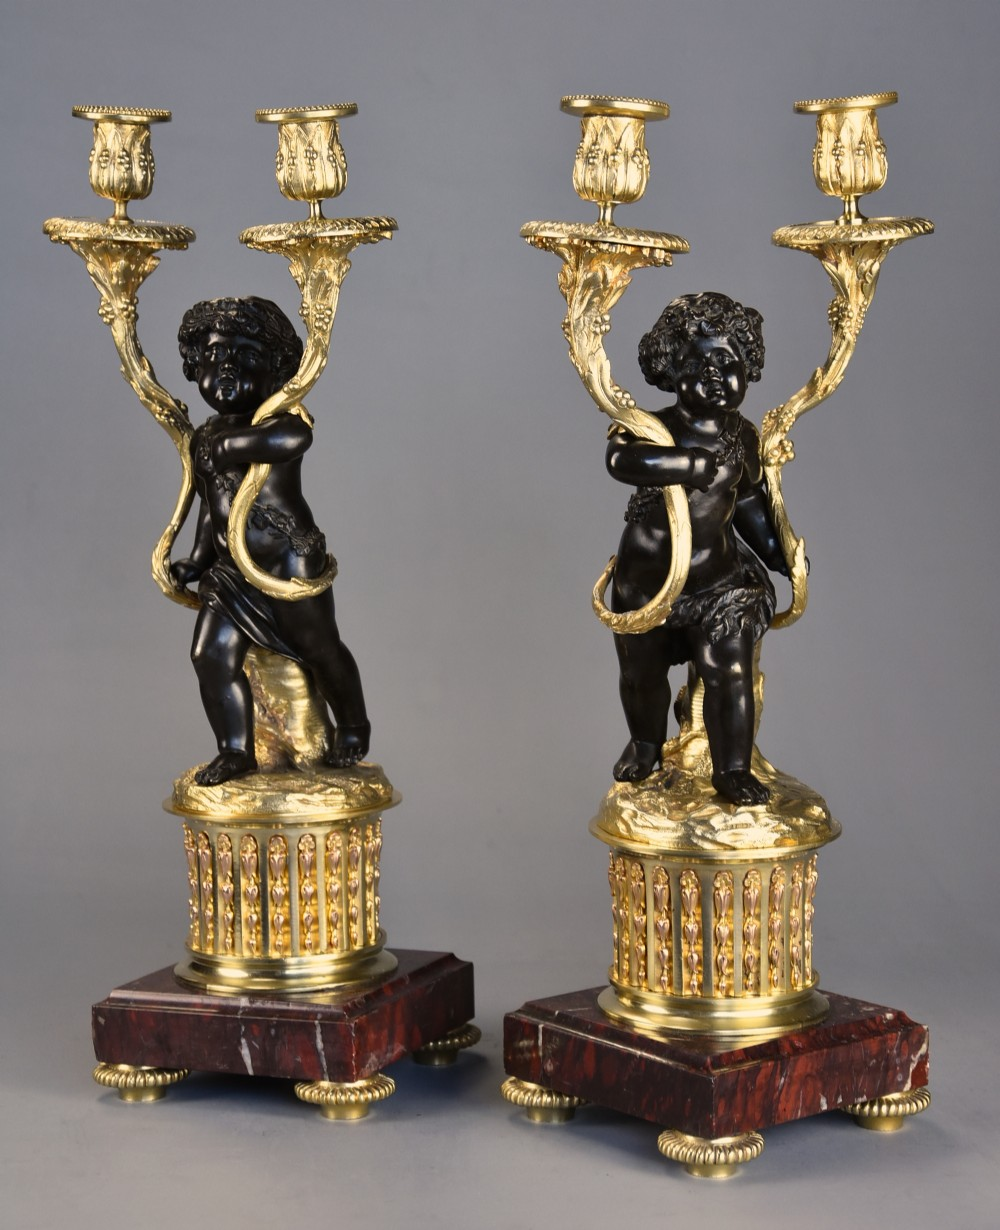 pair of fine quality french late 19th century ormolu bronze candelabra in the manner of clodion